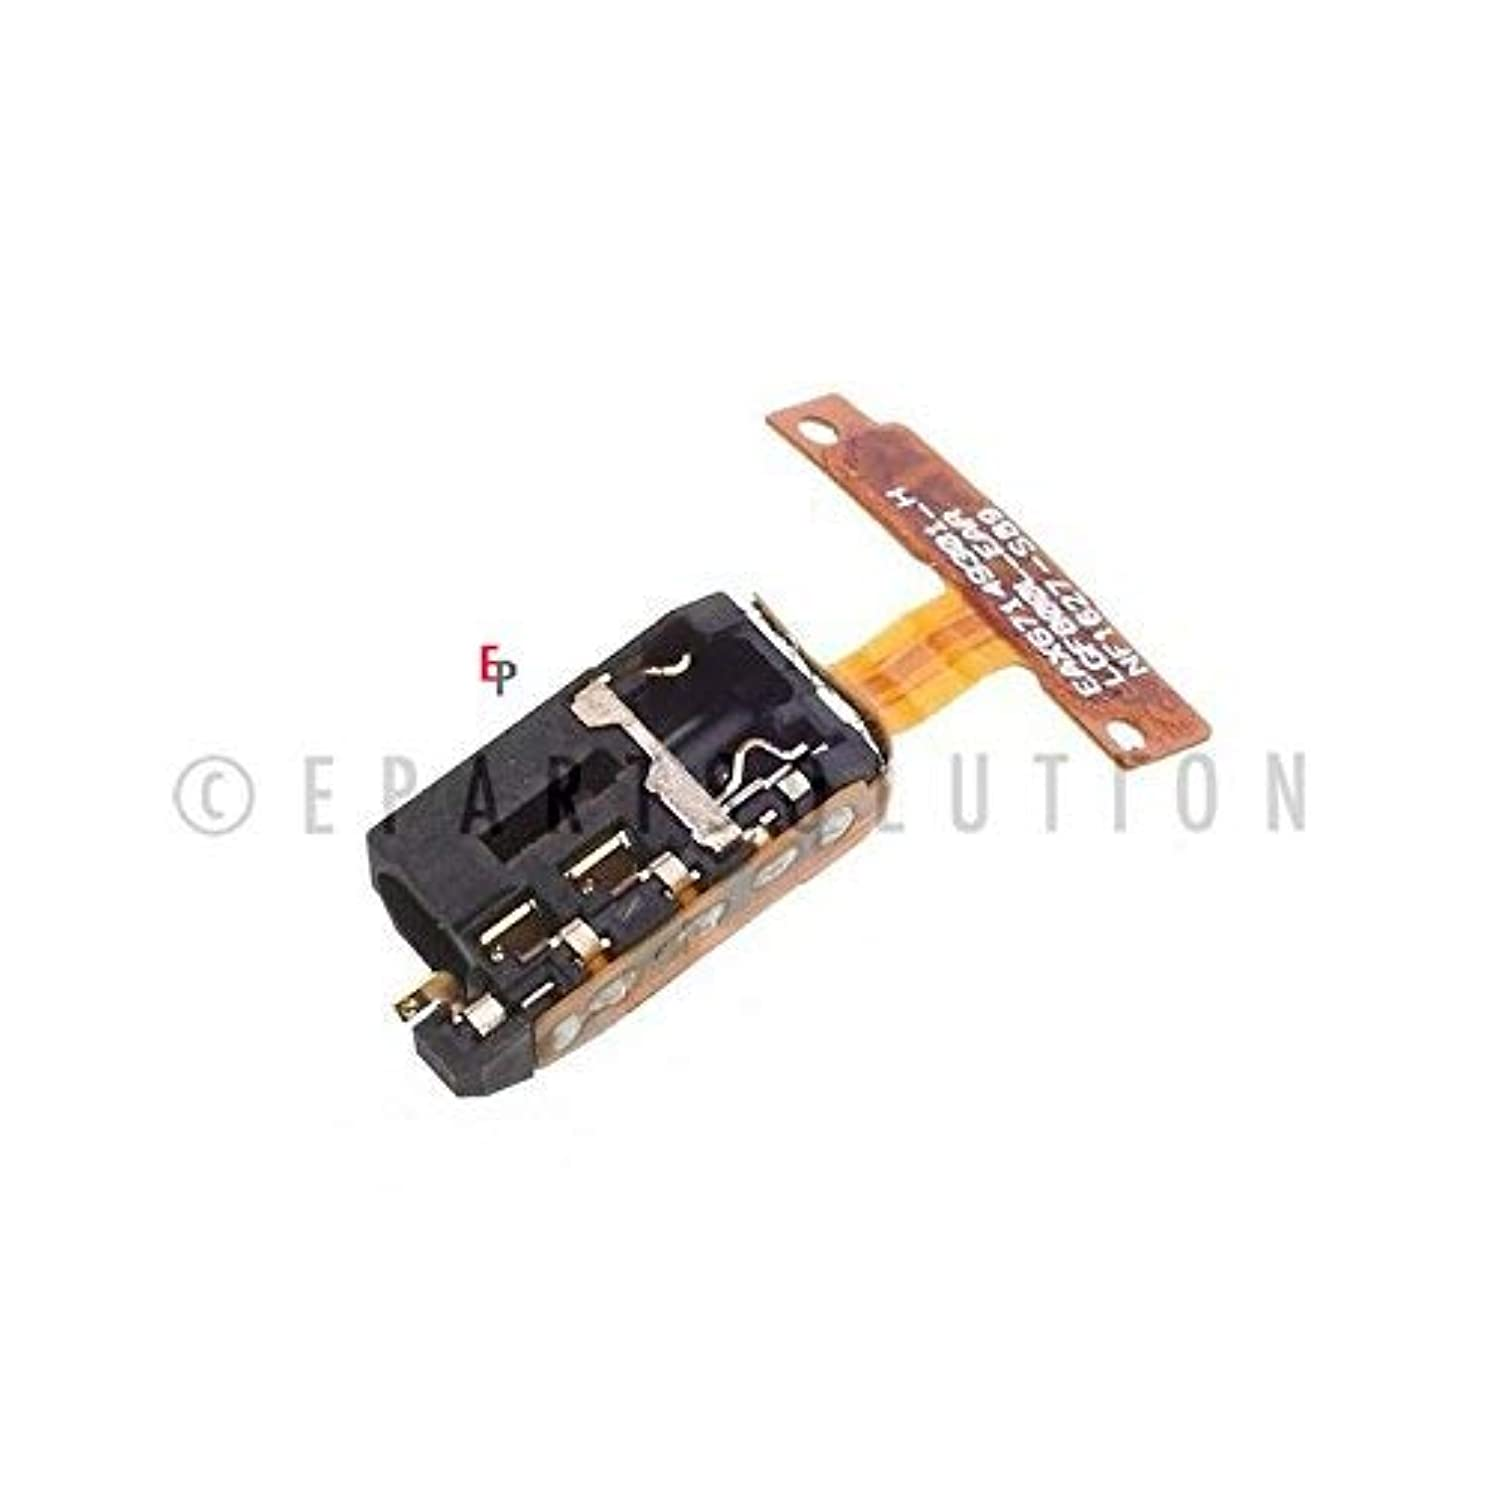 ePartSolution_Audio Jack Earphone Headphone Flex Cable for LG V20 H910 H915 H918 H990 VS995 Replacement Part USA Seller